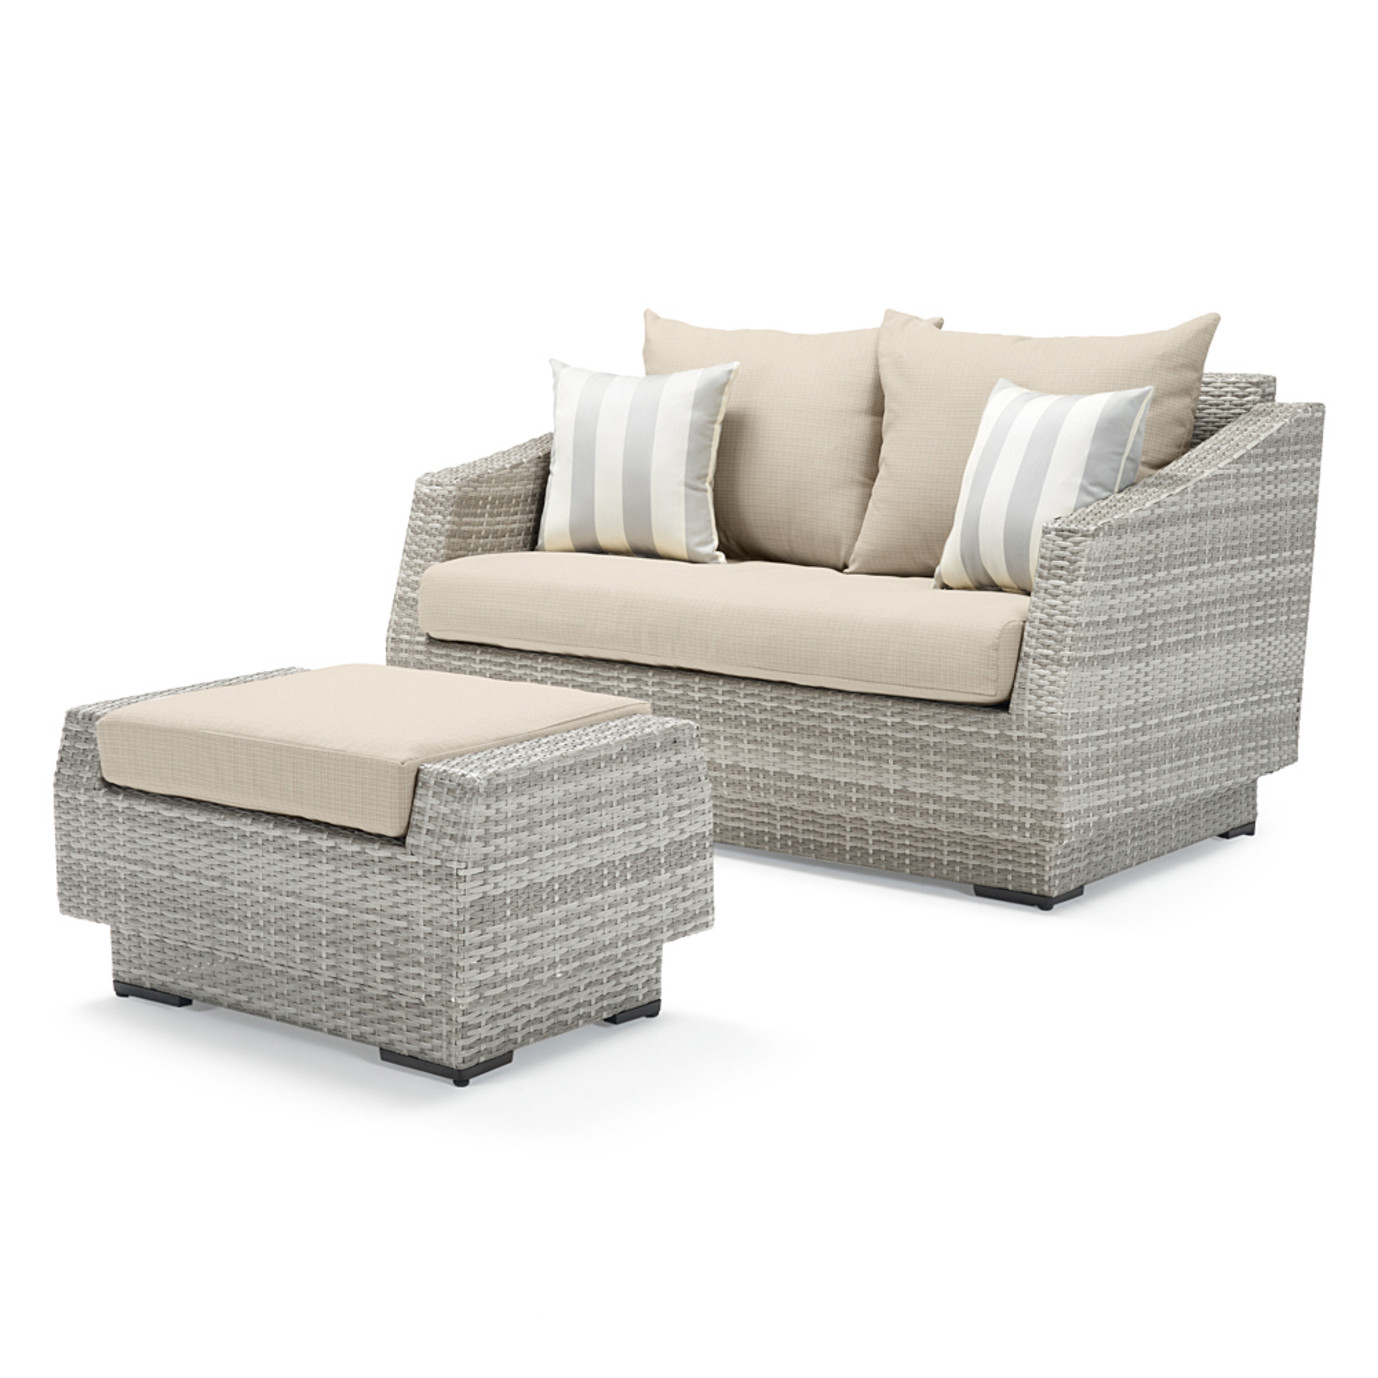 Cannes™ Loveseat and Ottoman - Slate Gray